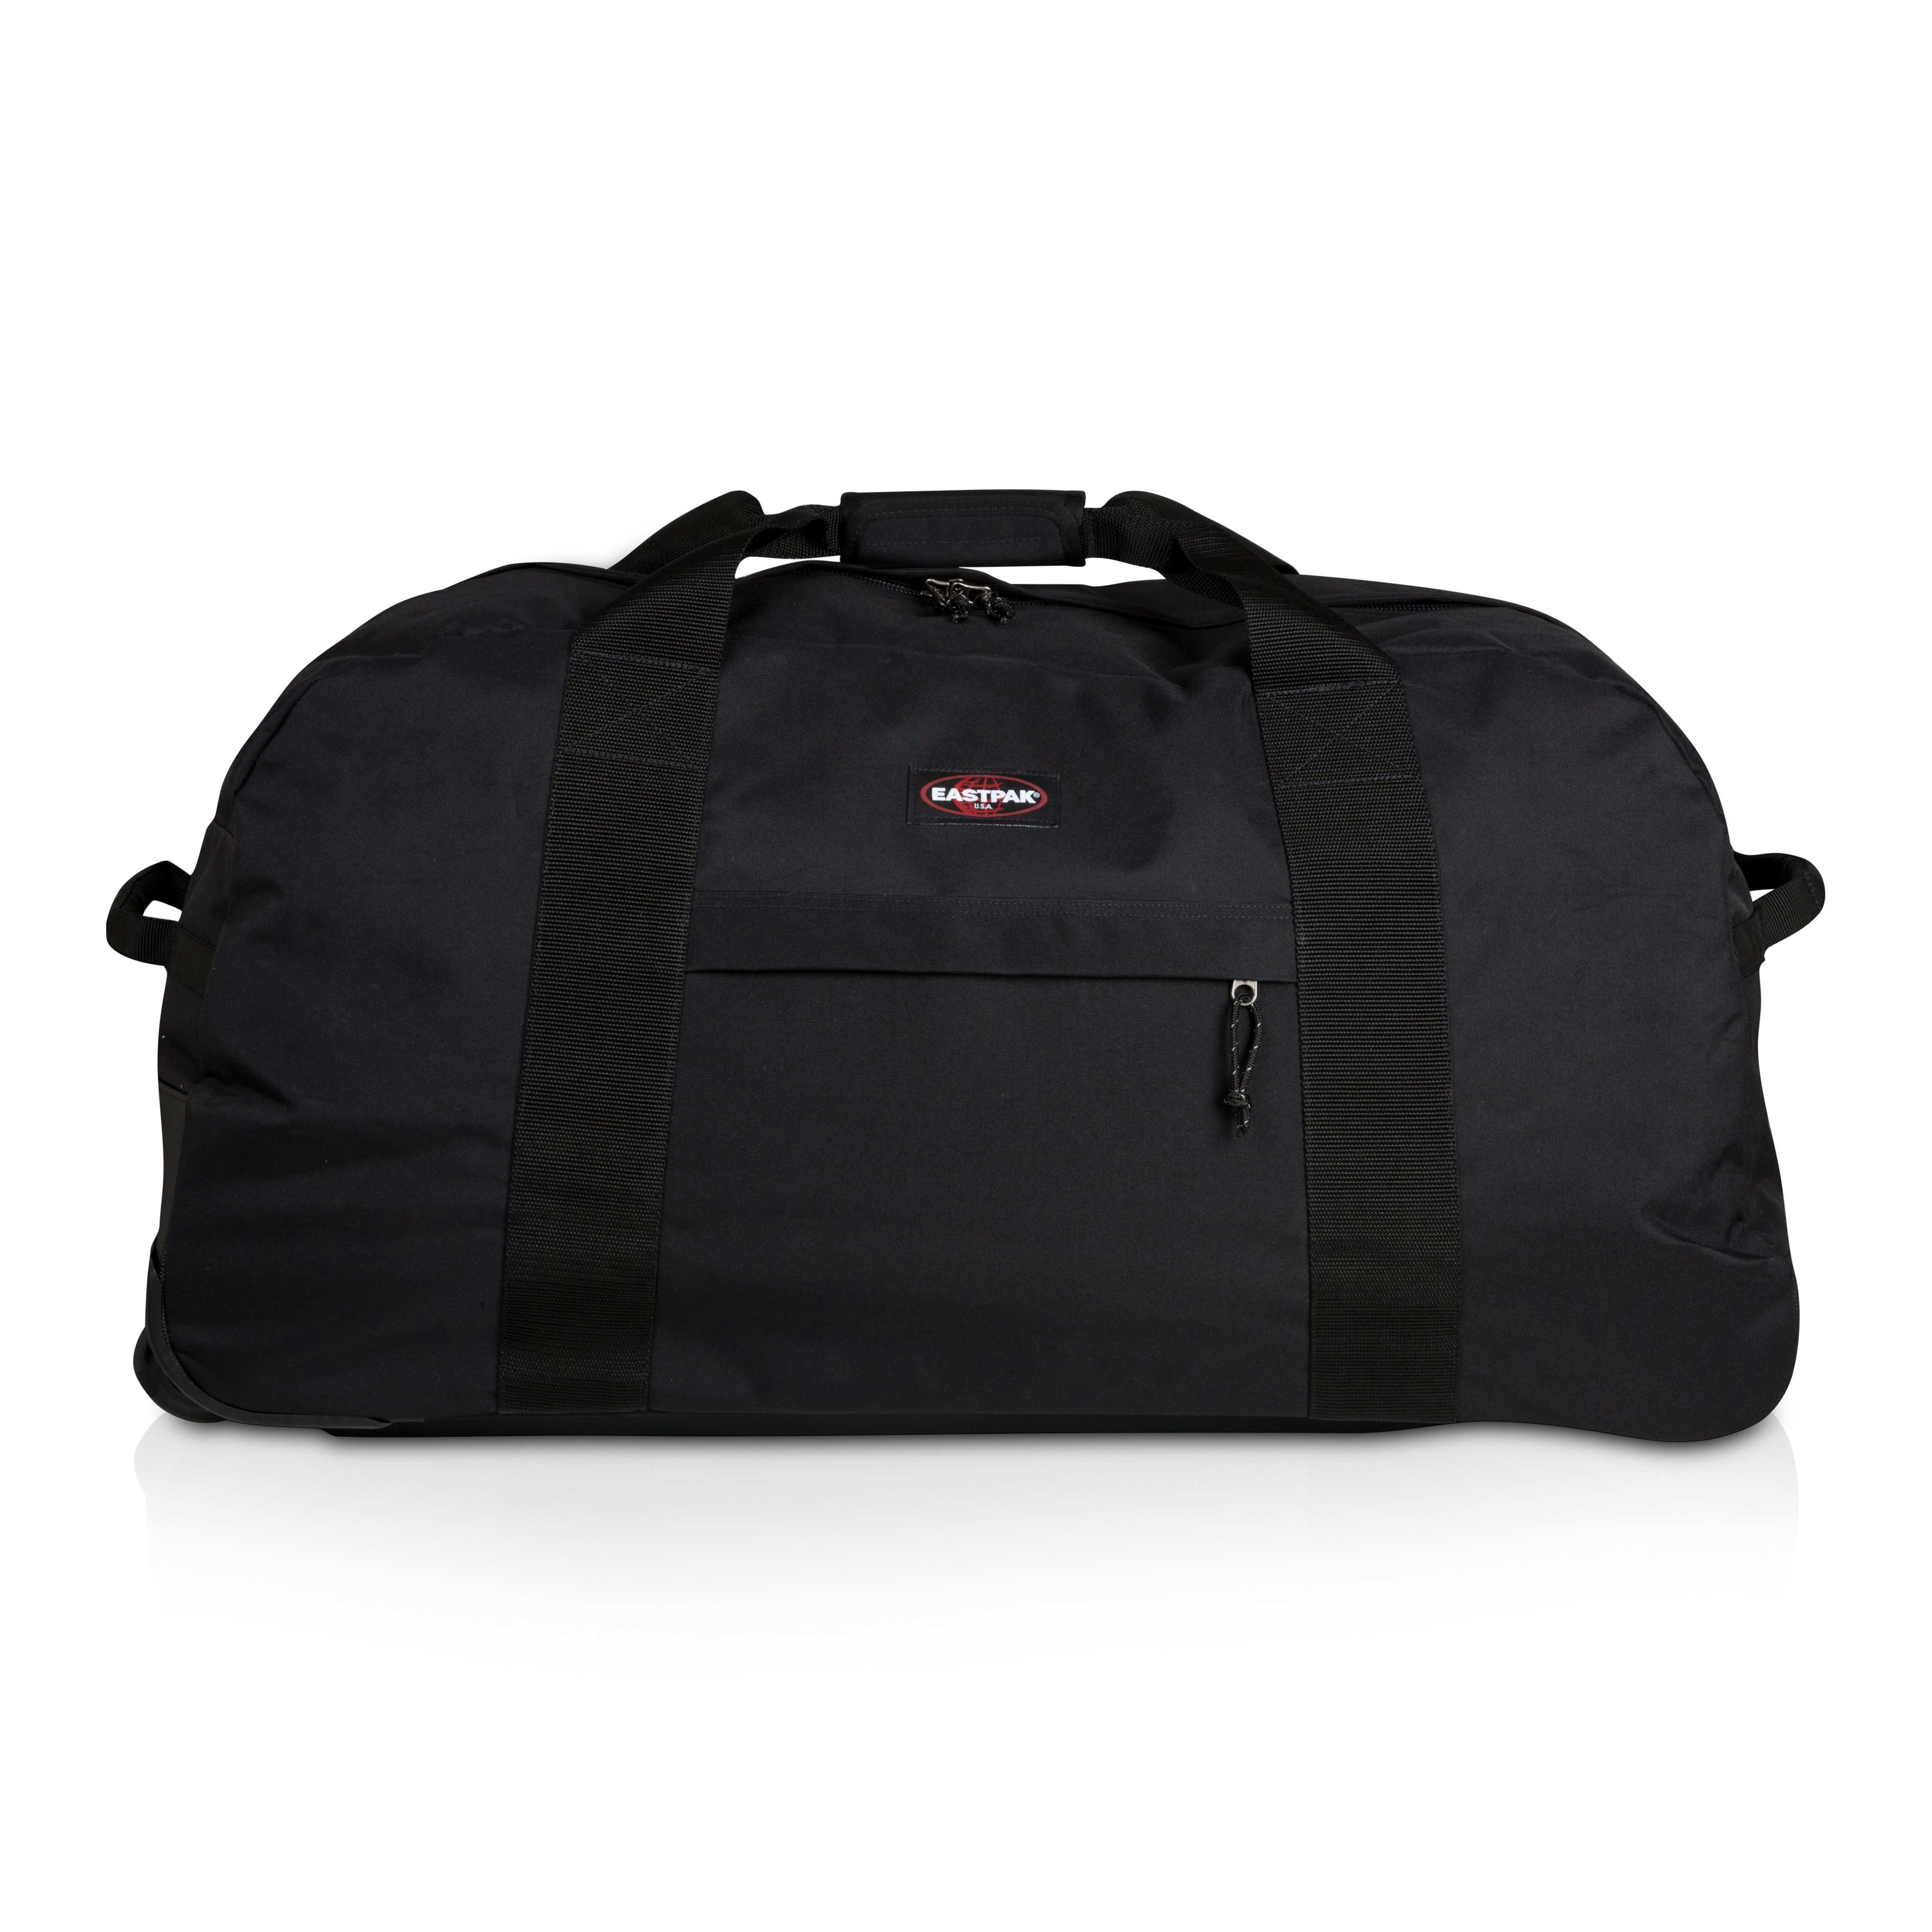 Eastpak Container 85 Wheeled Holdall - Black